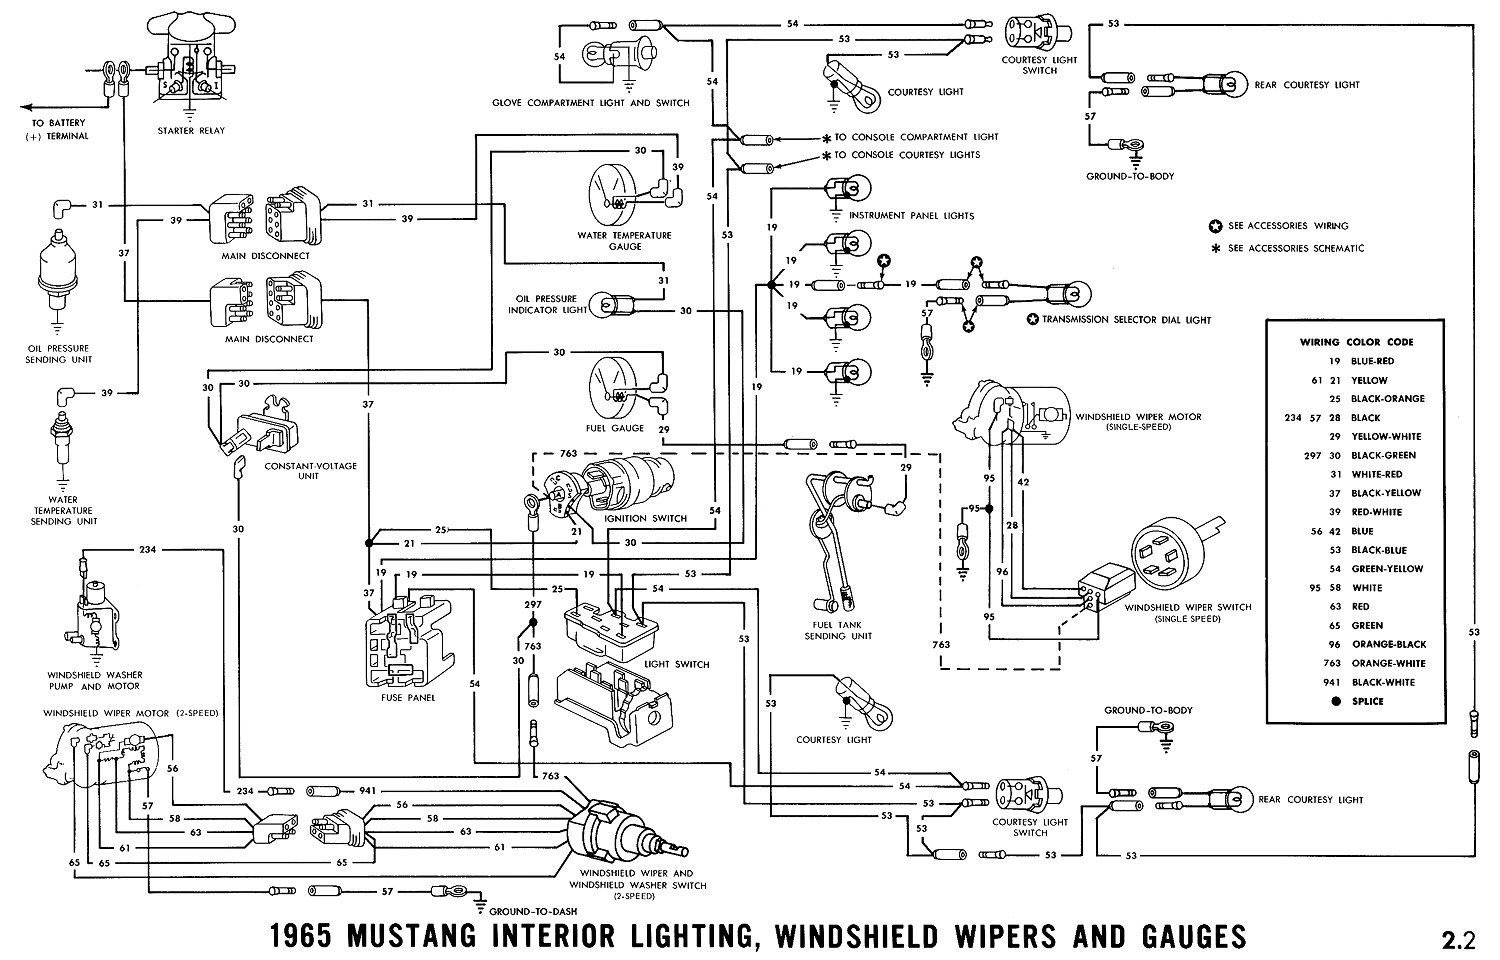 1965g 1965 mustang wiring diagrams average joe restoration ford mustang wiring diagram at cos-gaming.co